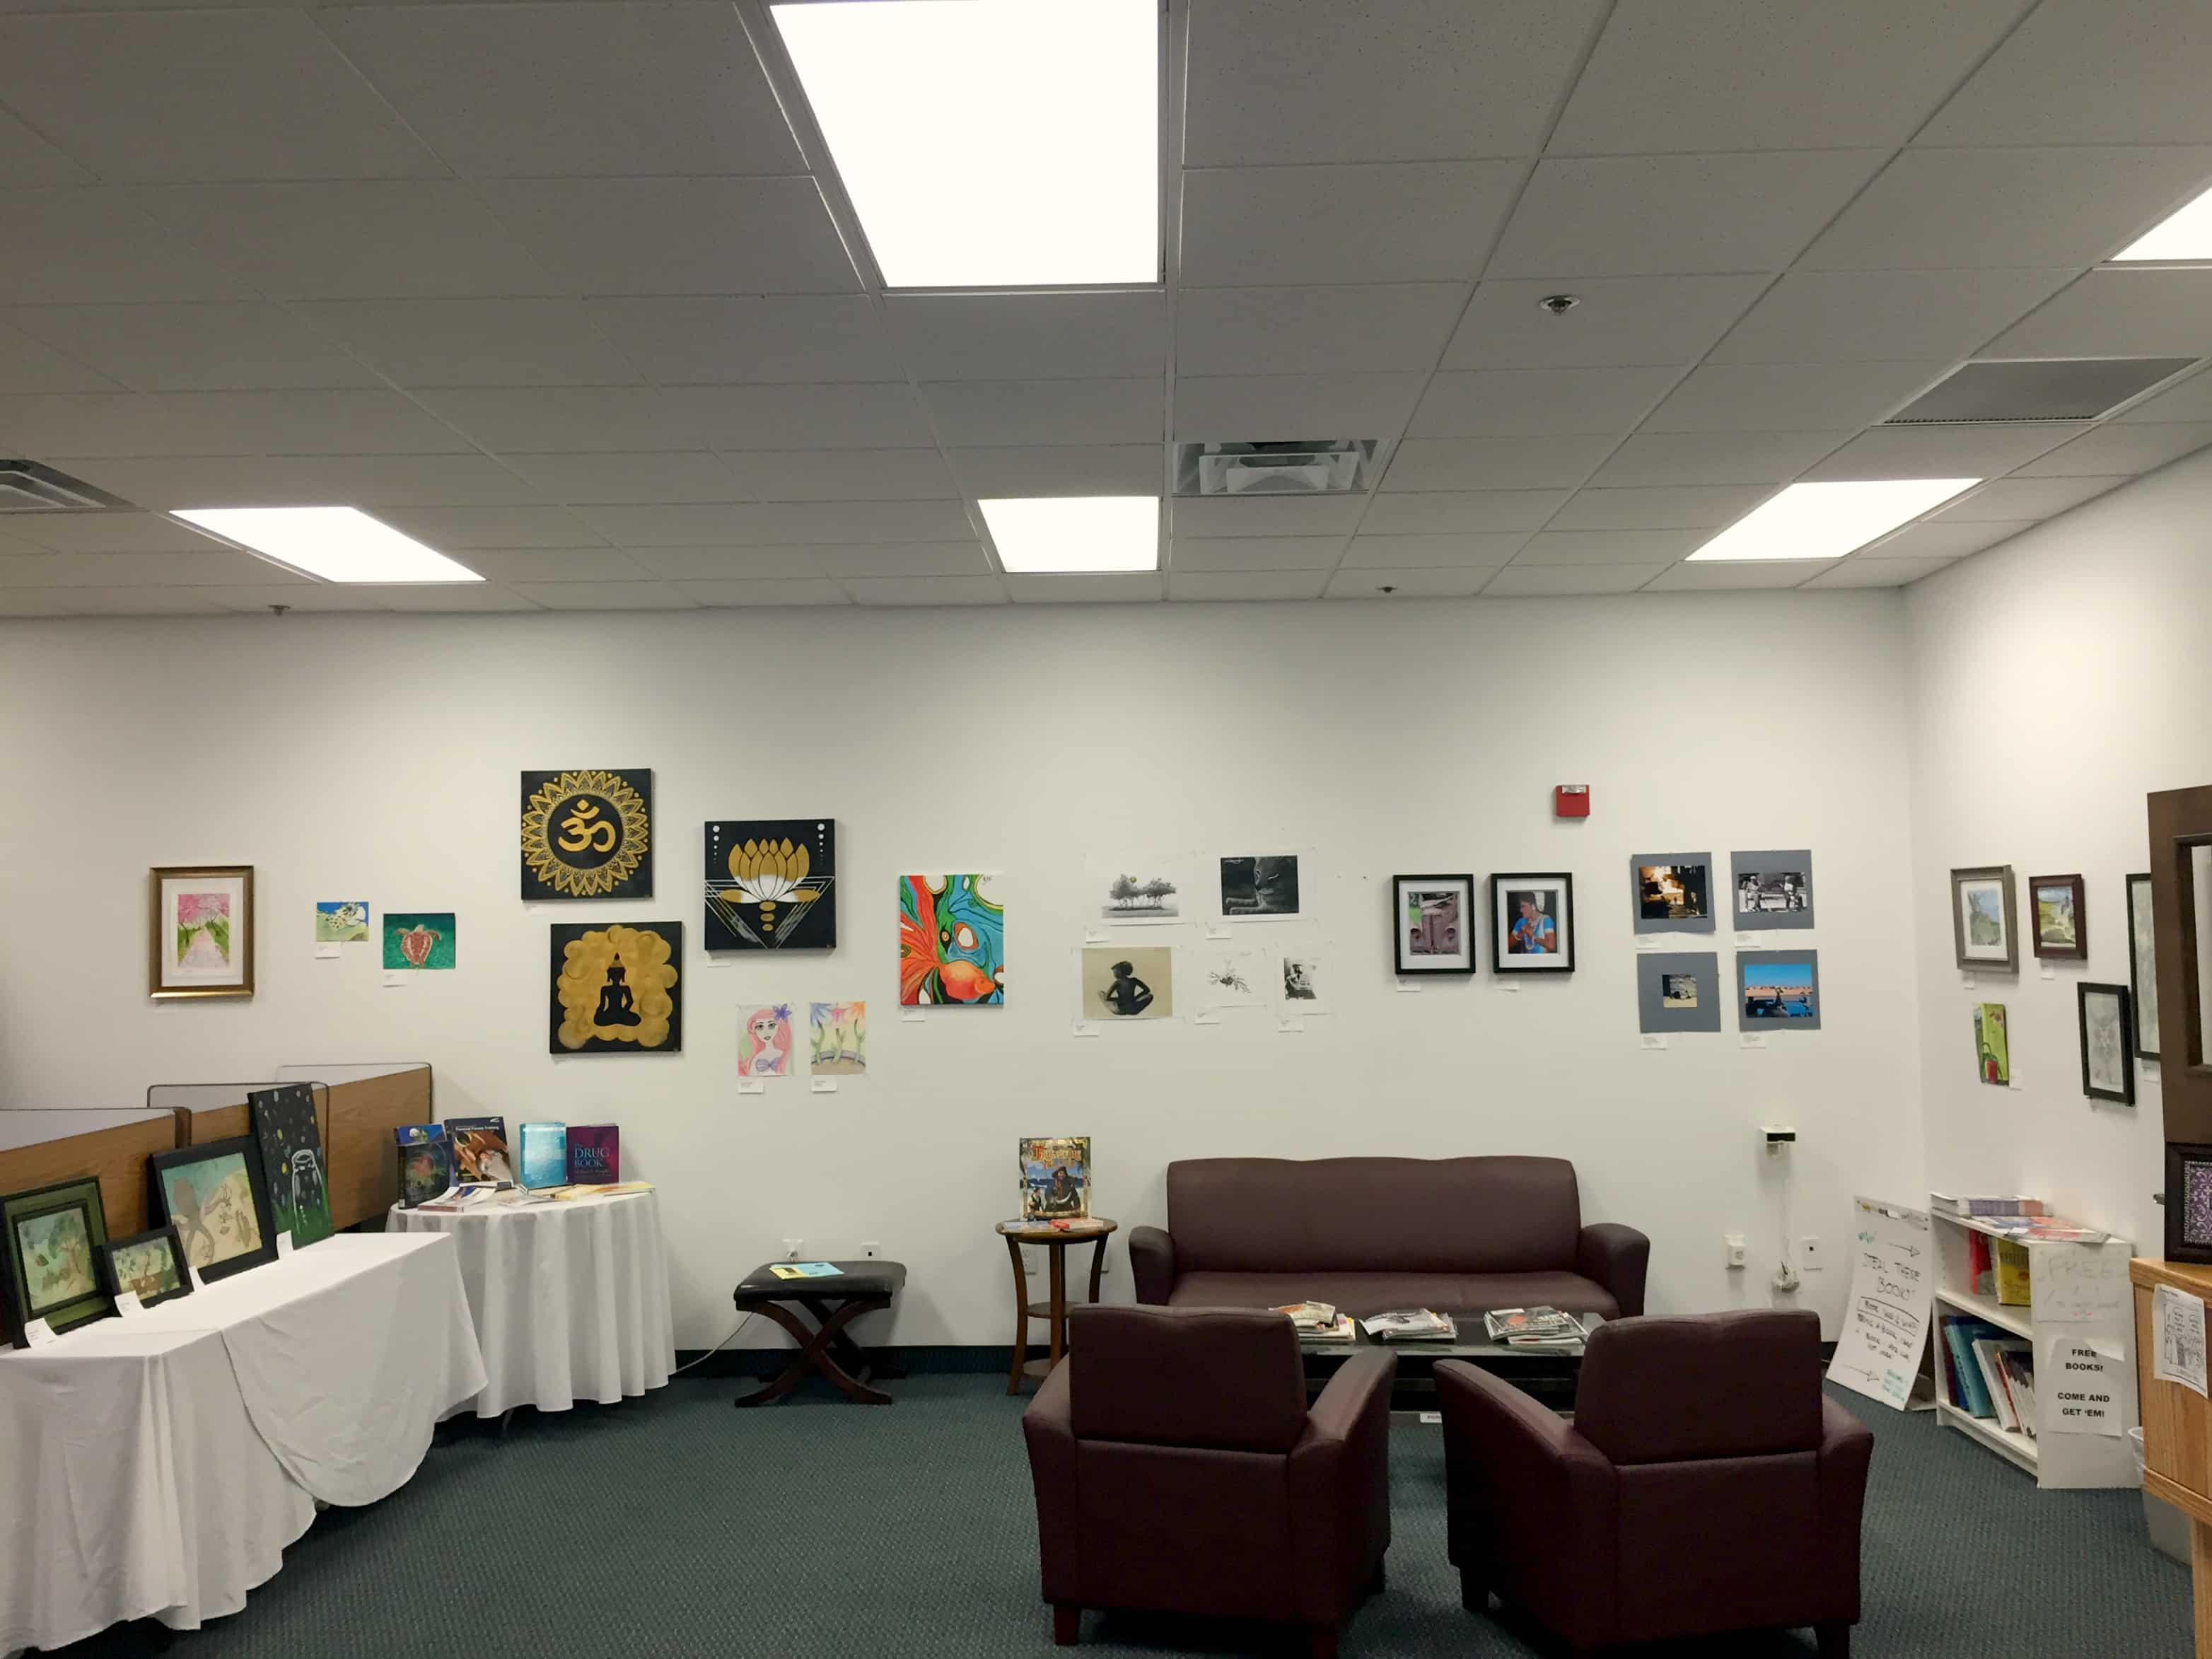 Melbourne Campus Hosts 3rd Annual Art Expo